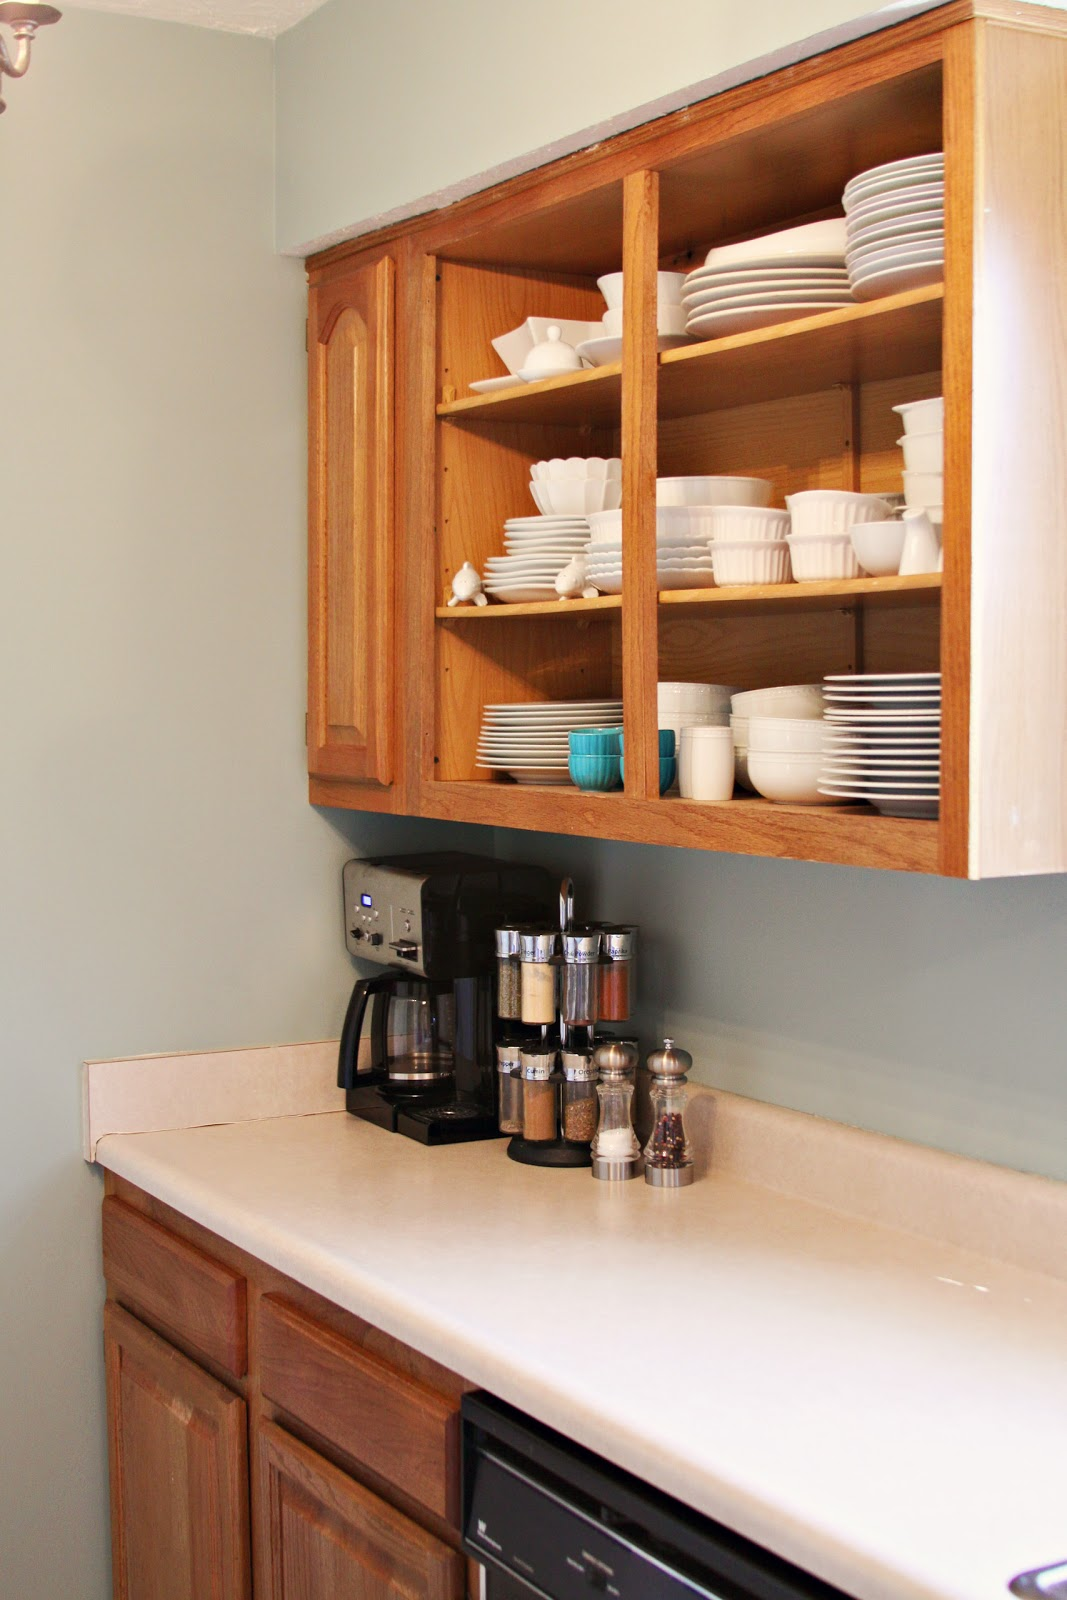 The Benefits Of Open Shelving In The Kitchen: Casa De Luna Creations: Open Shelving Cabinets